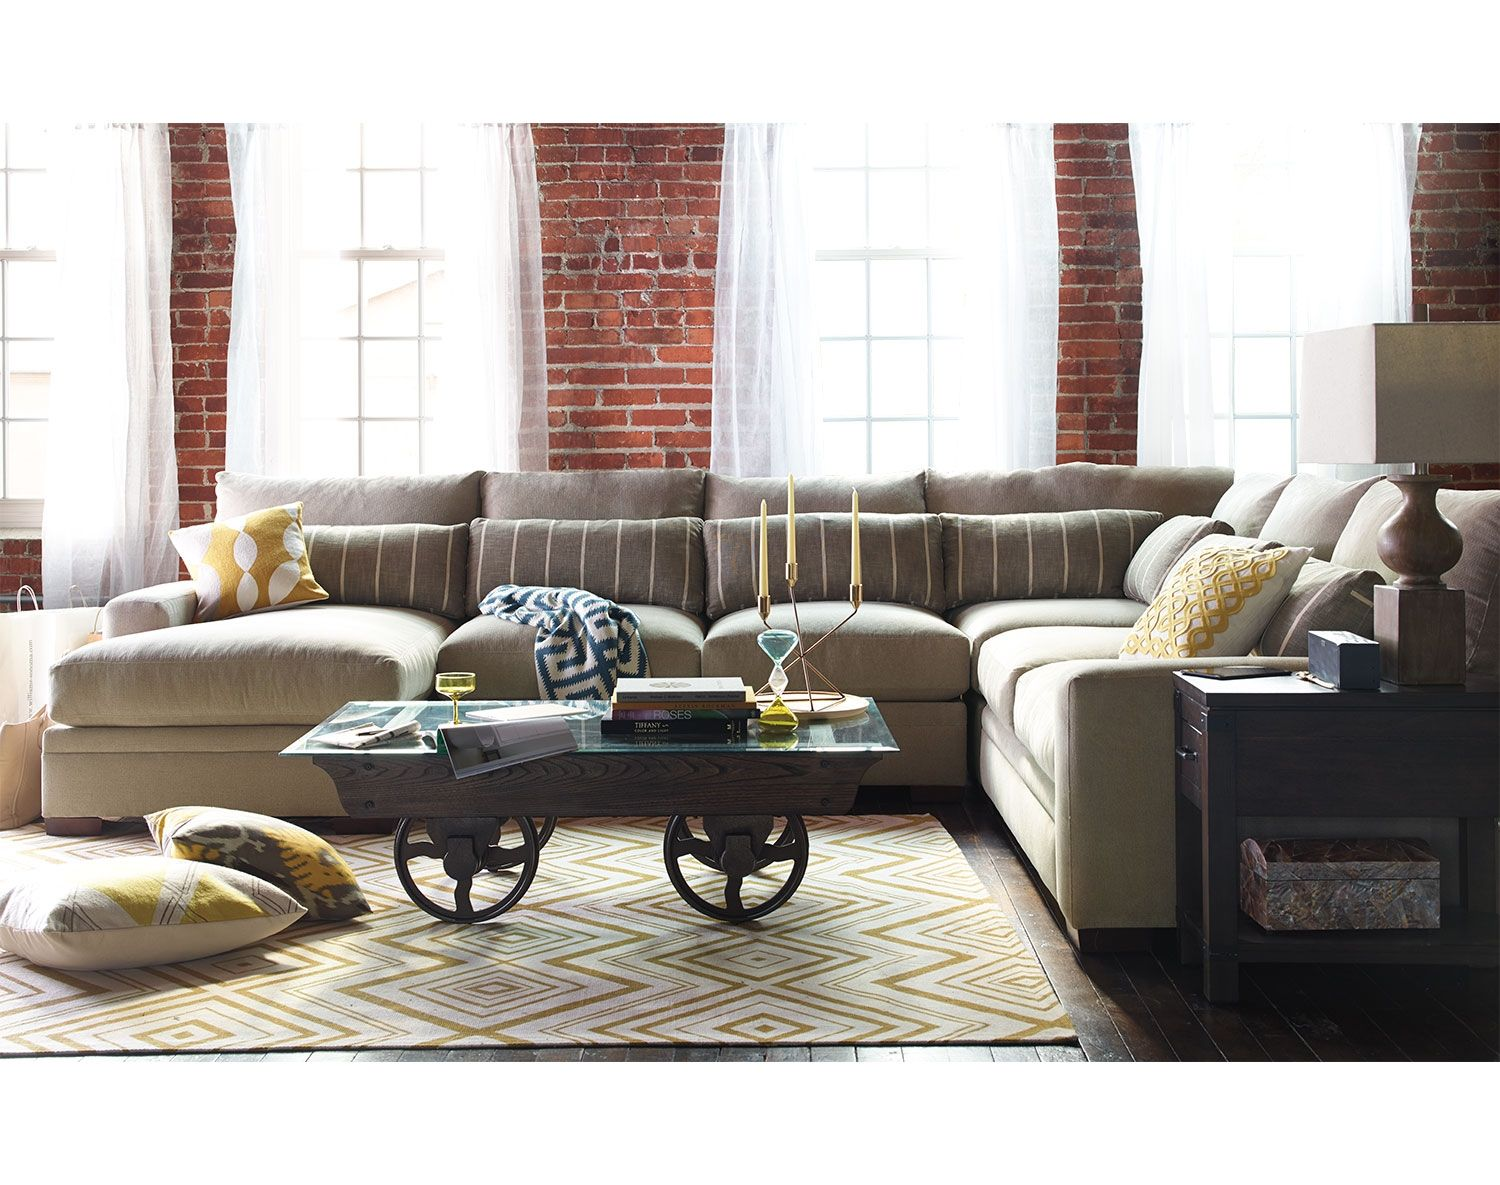 Living Room Design With Sectional Sofa Interesting My Favorite But It Cost $2999 The Ventura Collection Review